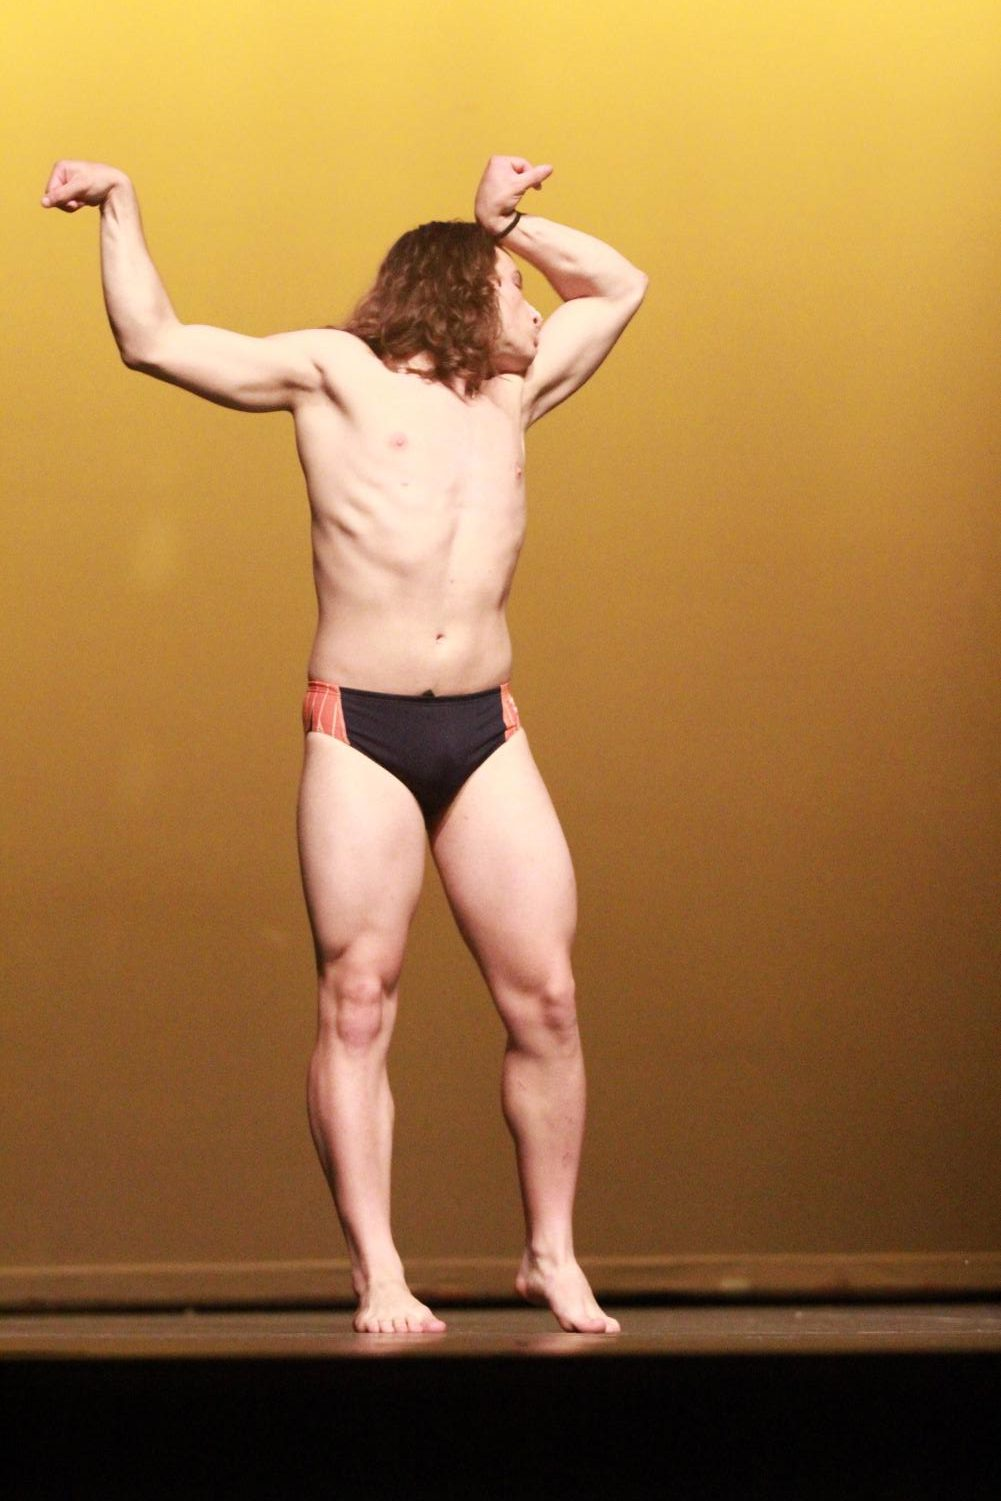 Senior+Brennan+Guilds+showing+off+his+swimmer-bod+during+the+swimsuit+portion+of+the+Mr.+Watkins+Mill+contest.